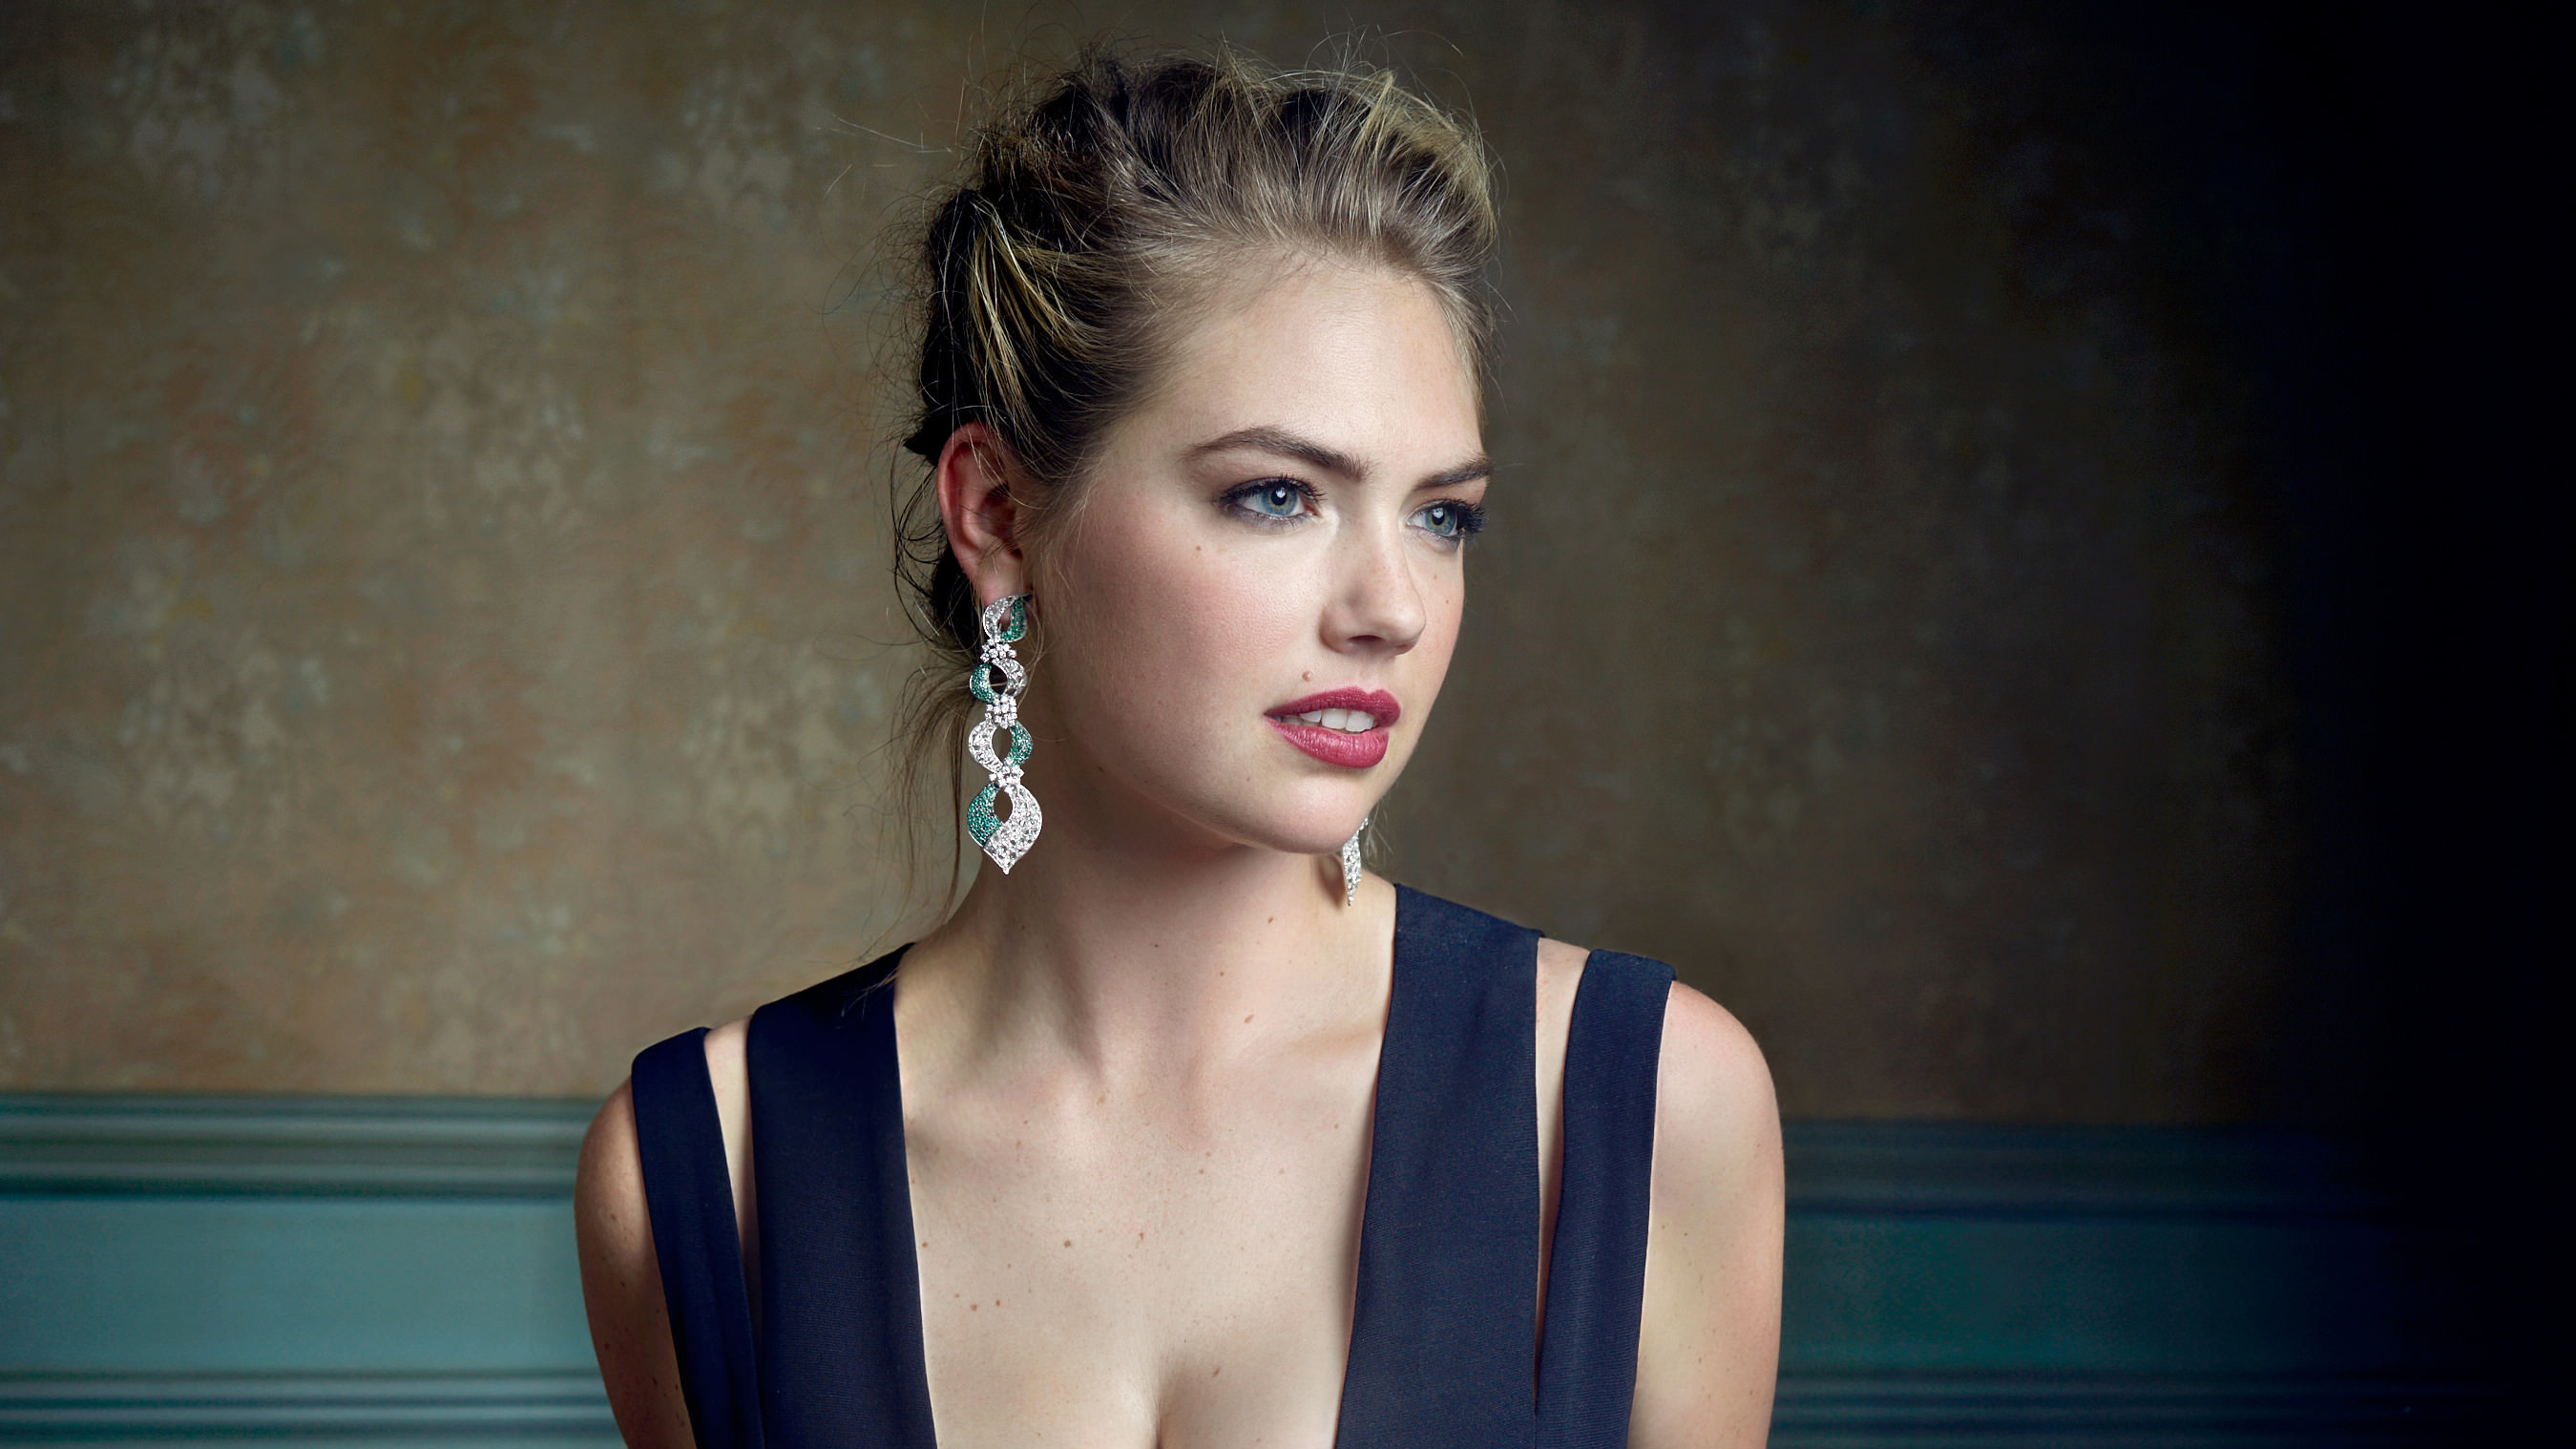 Kate Upton 2018 Hd Celebrities 4k Wallpapers Images